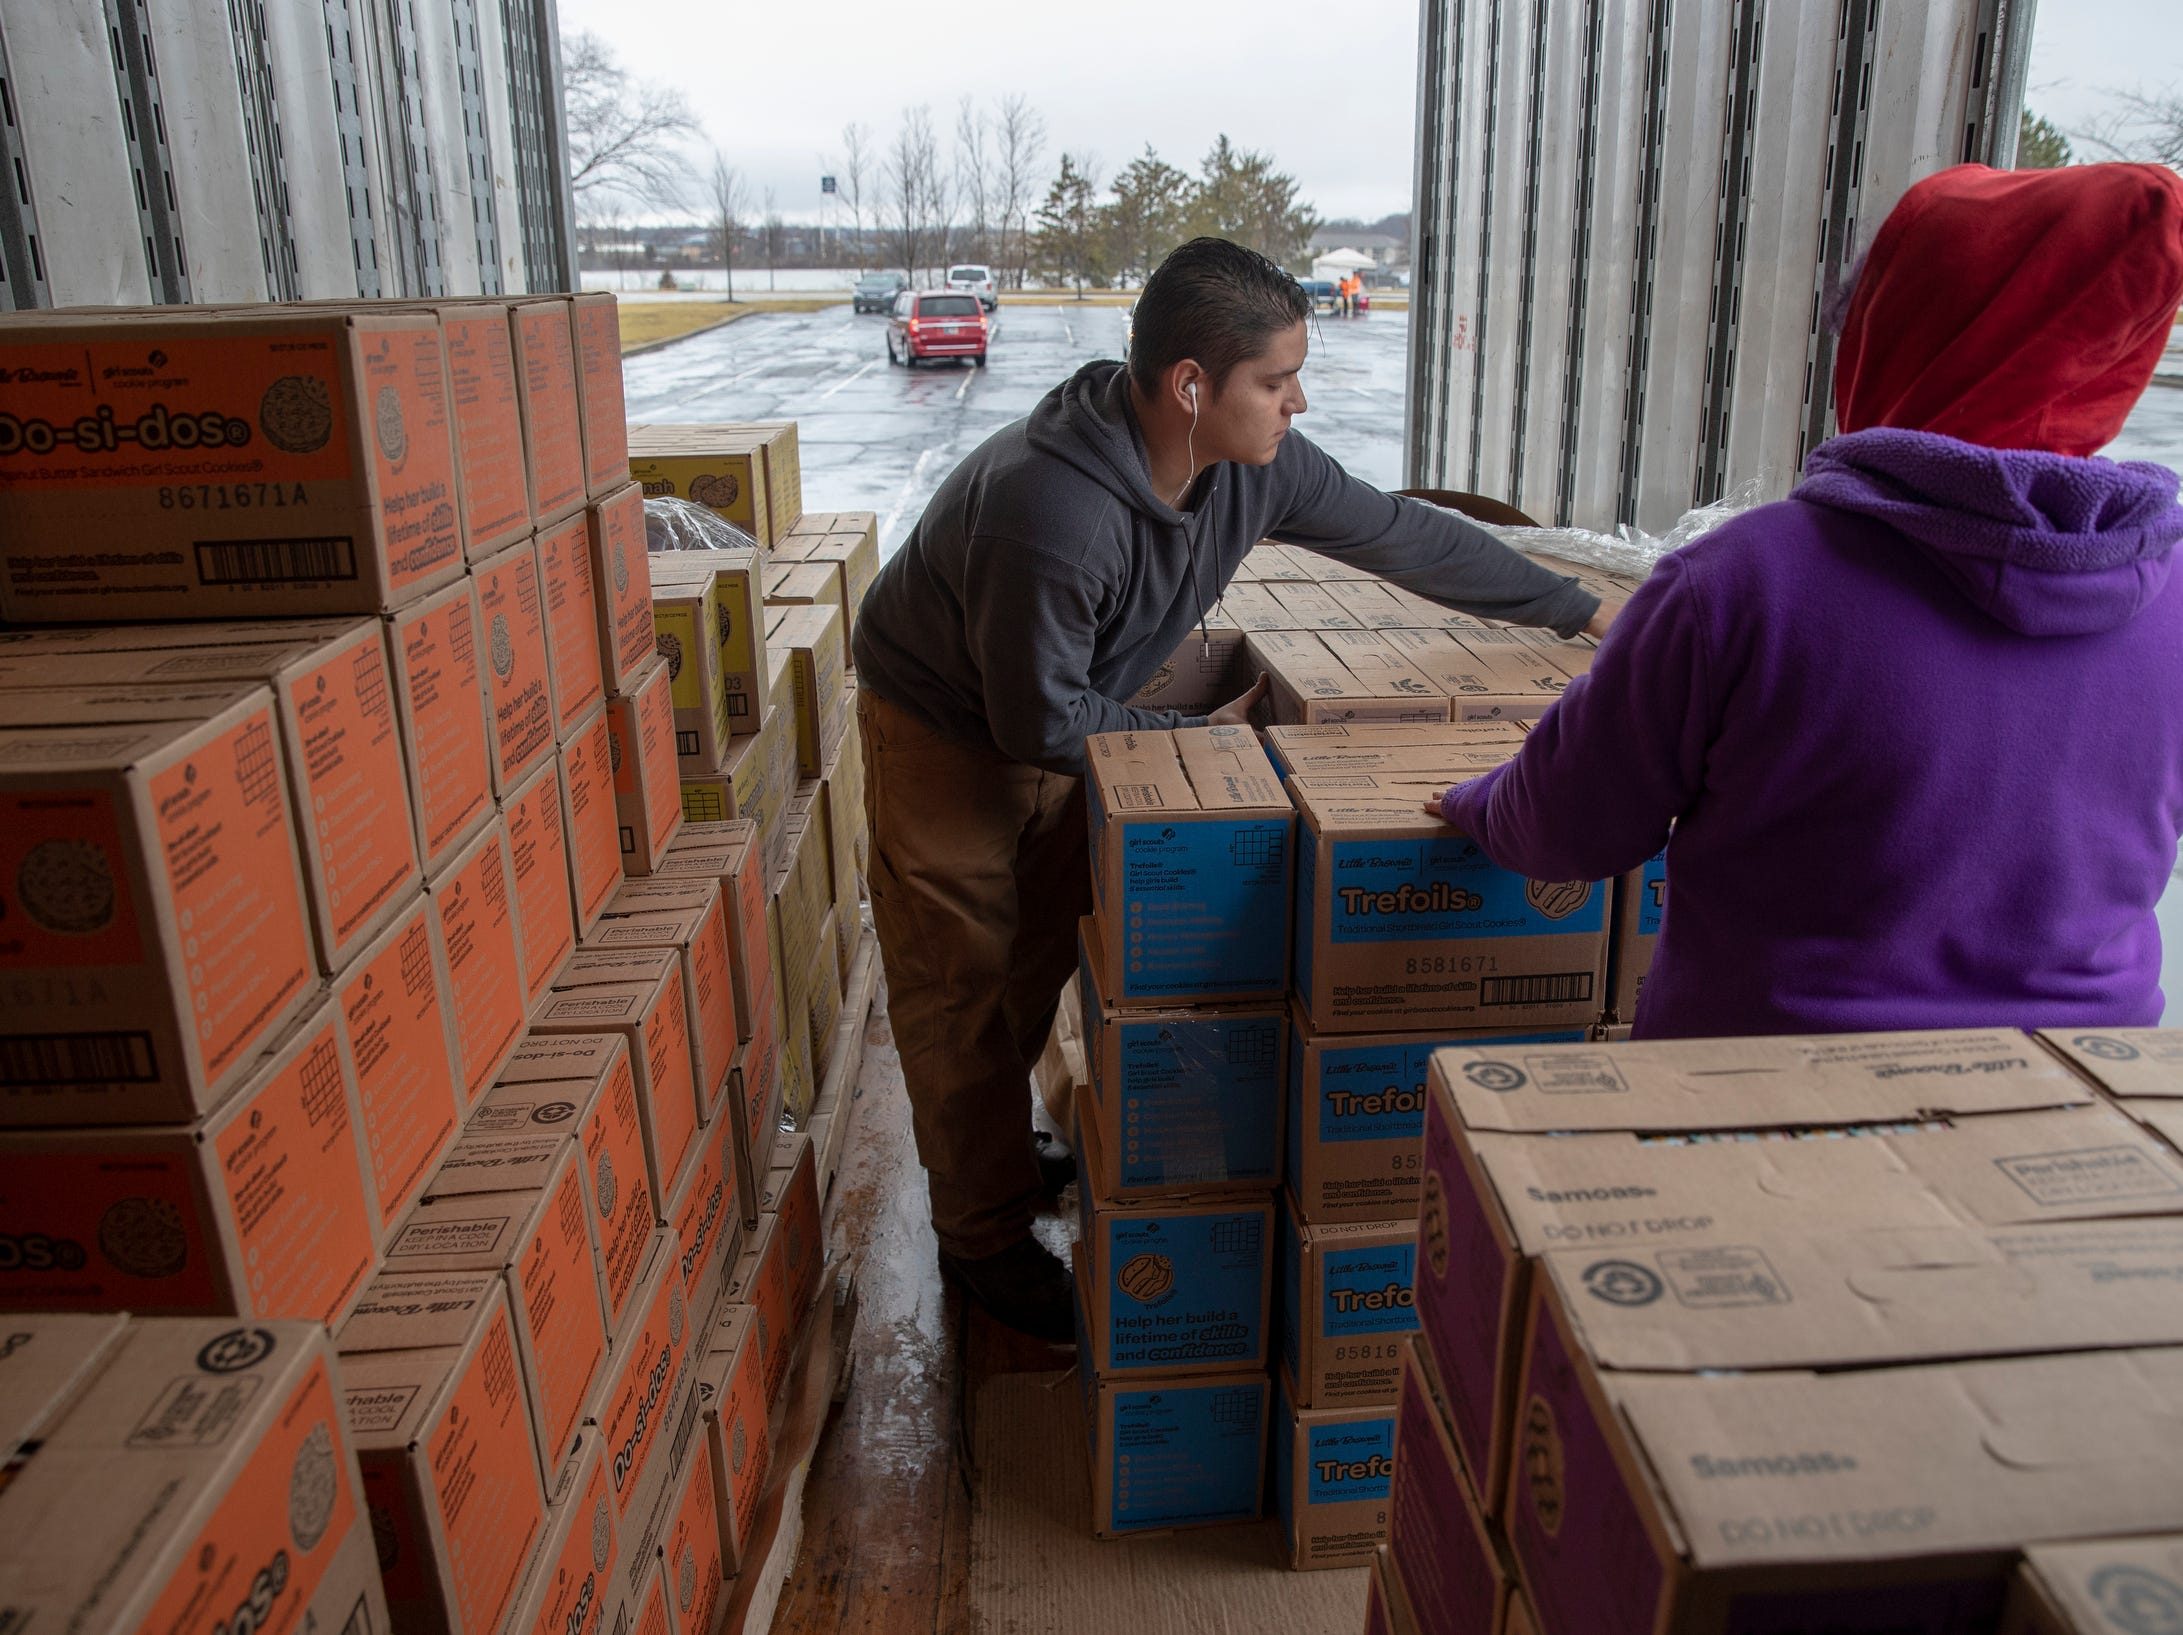 Nathaniel Scaggs (left), with mother Misty Scaggs, both of Indianapolis, work the distribution for Girl Scout Cookies in Indianapolis, Wednesday, Feb. 6, 2019. The cookies will start to appear locally on the weekend, and should last into mid-March.